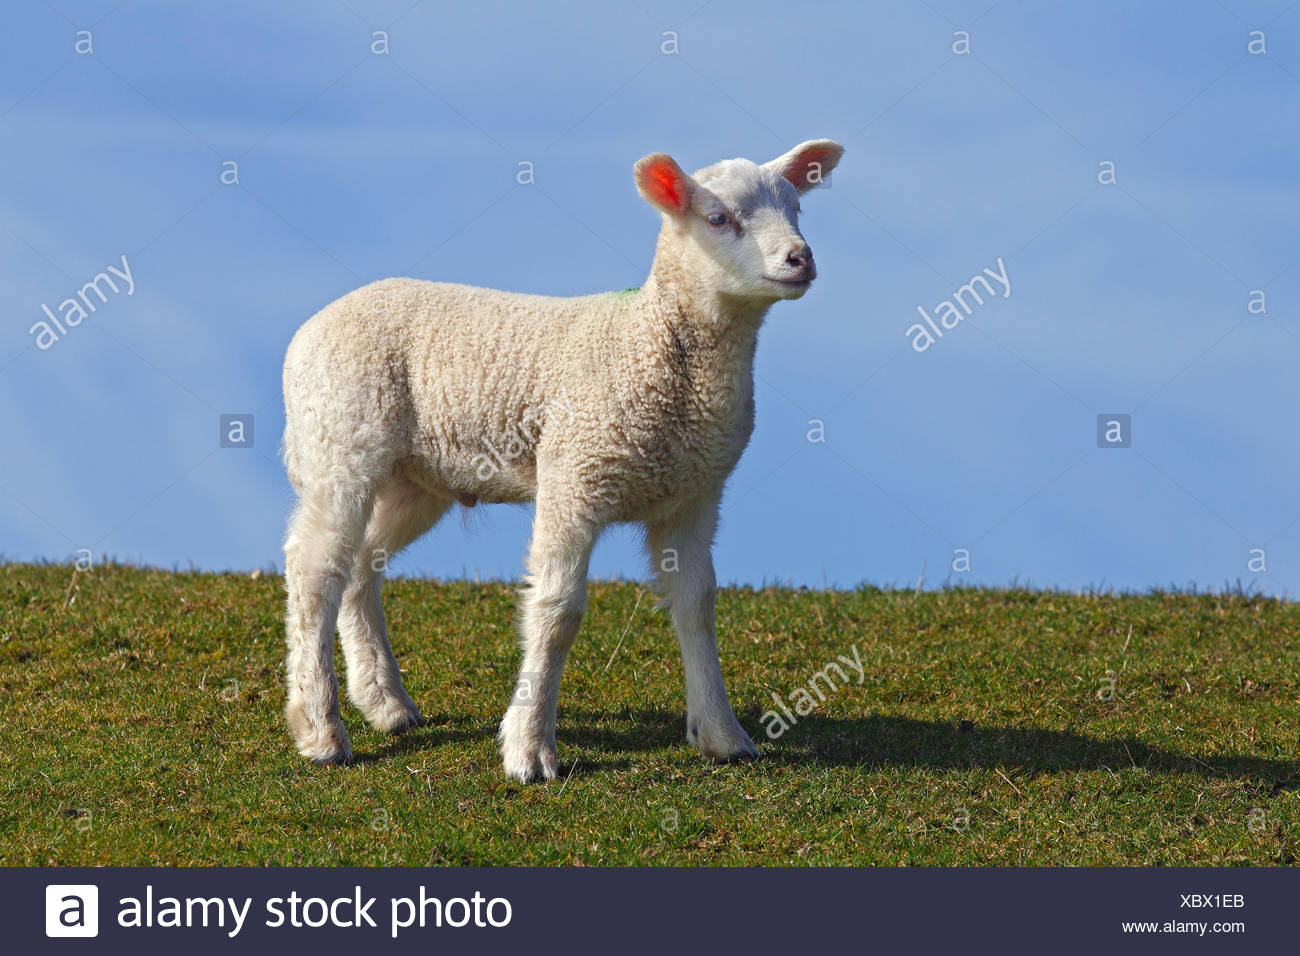 Lamb, domestic sheep, ewe lamb (Ovis ammon f. aries) standing on a dyke, Schleswig-Holstein, Germany, Europe - Stock Image